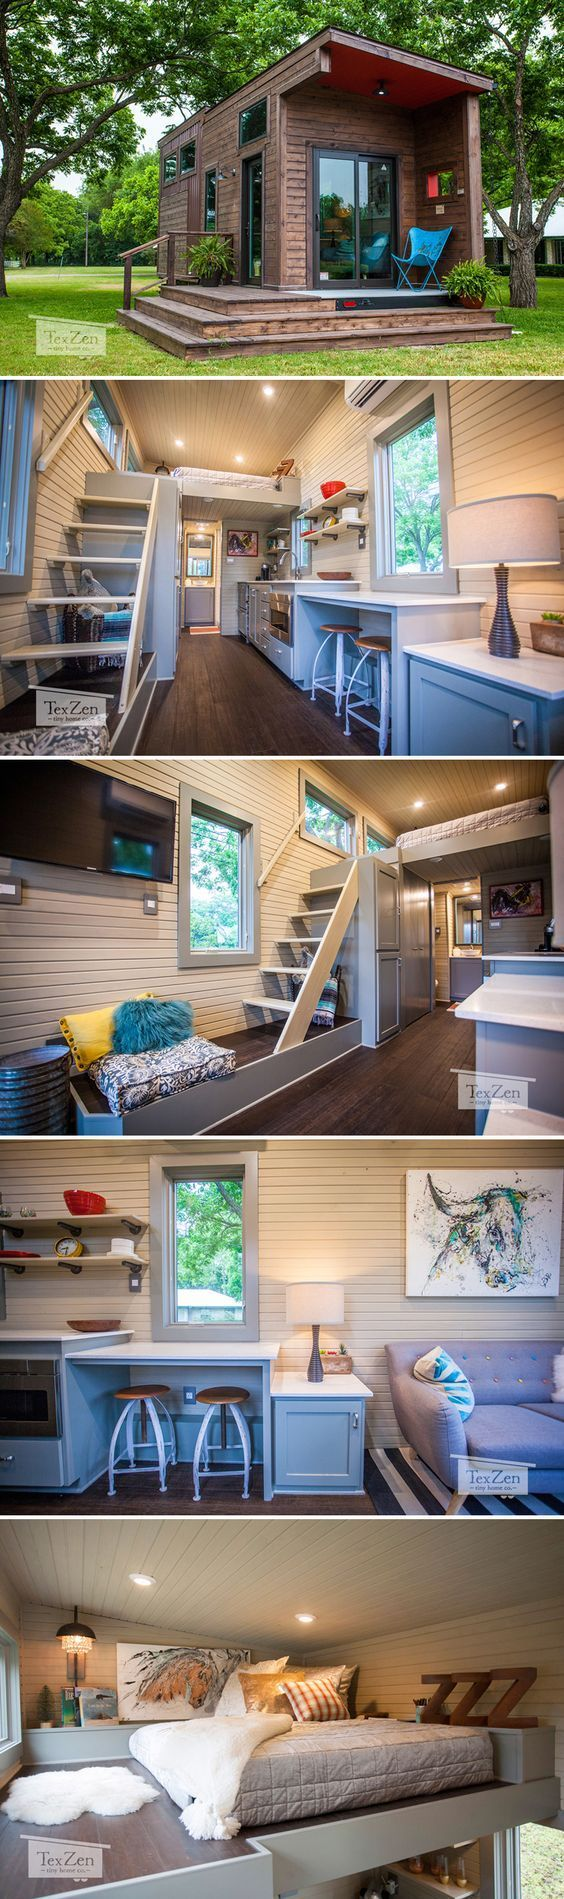 best tiny house images on pinterest tiny house cabin micro